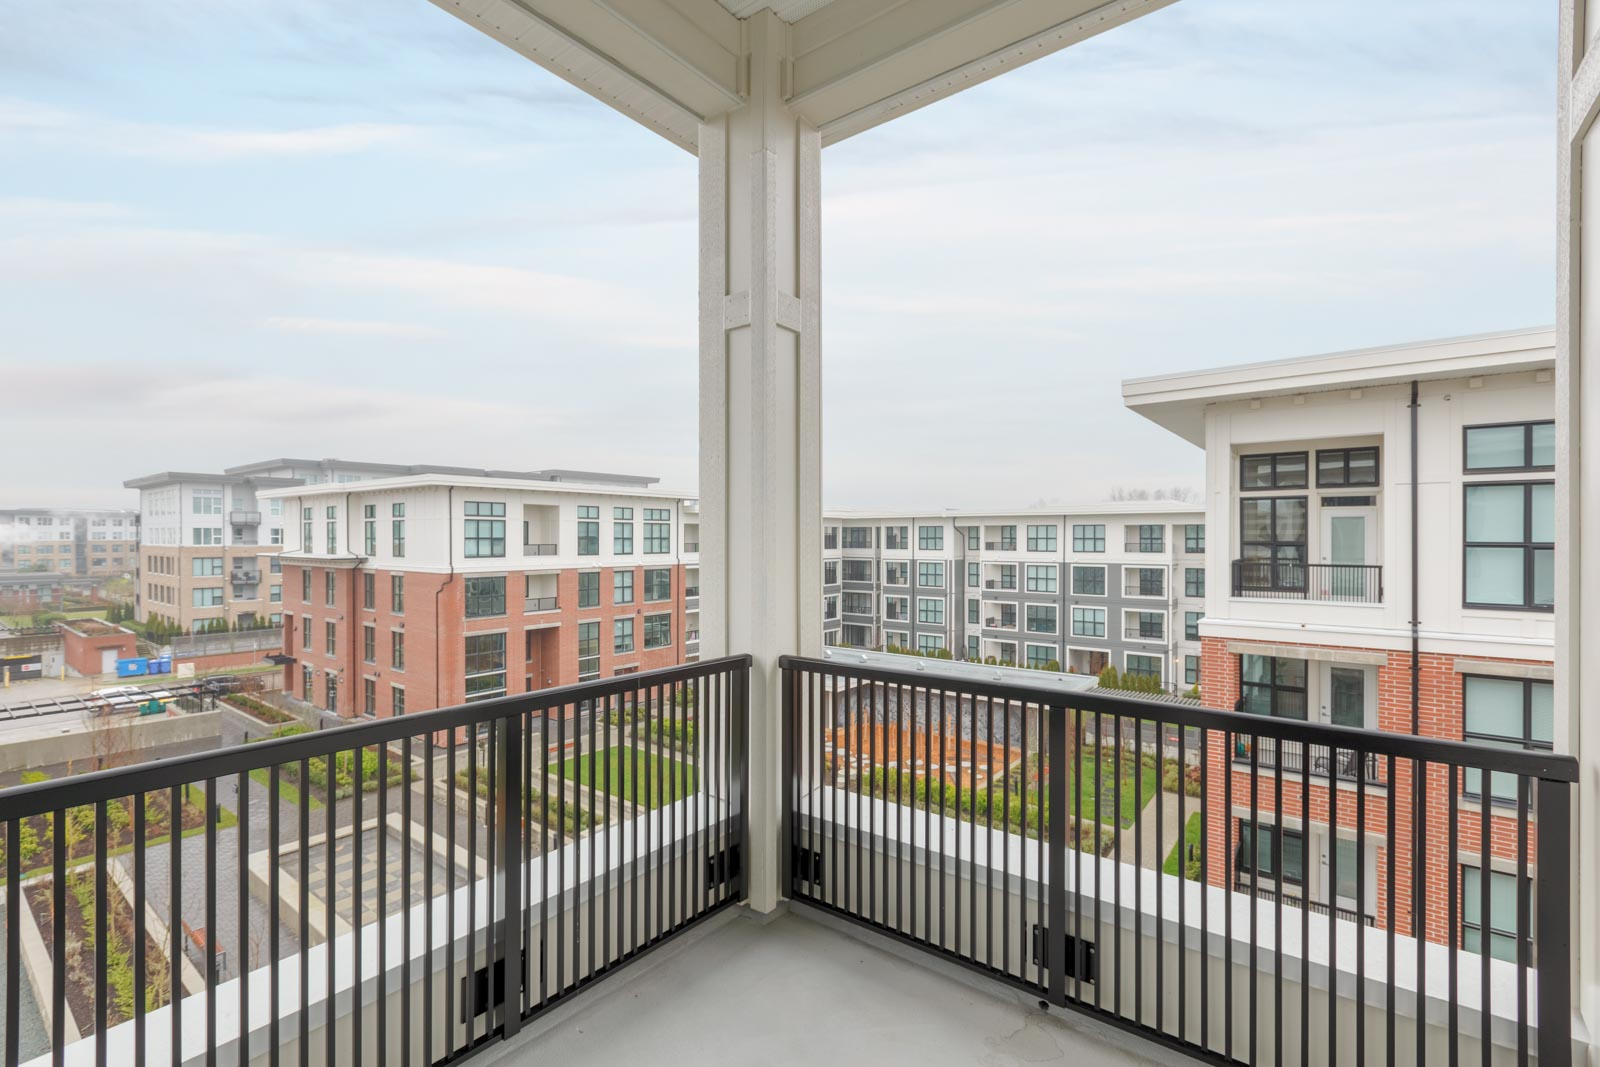 corner balcony patio of richmond rental townhouse unit overlooking multi family apartment building